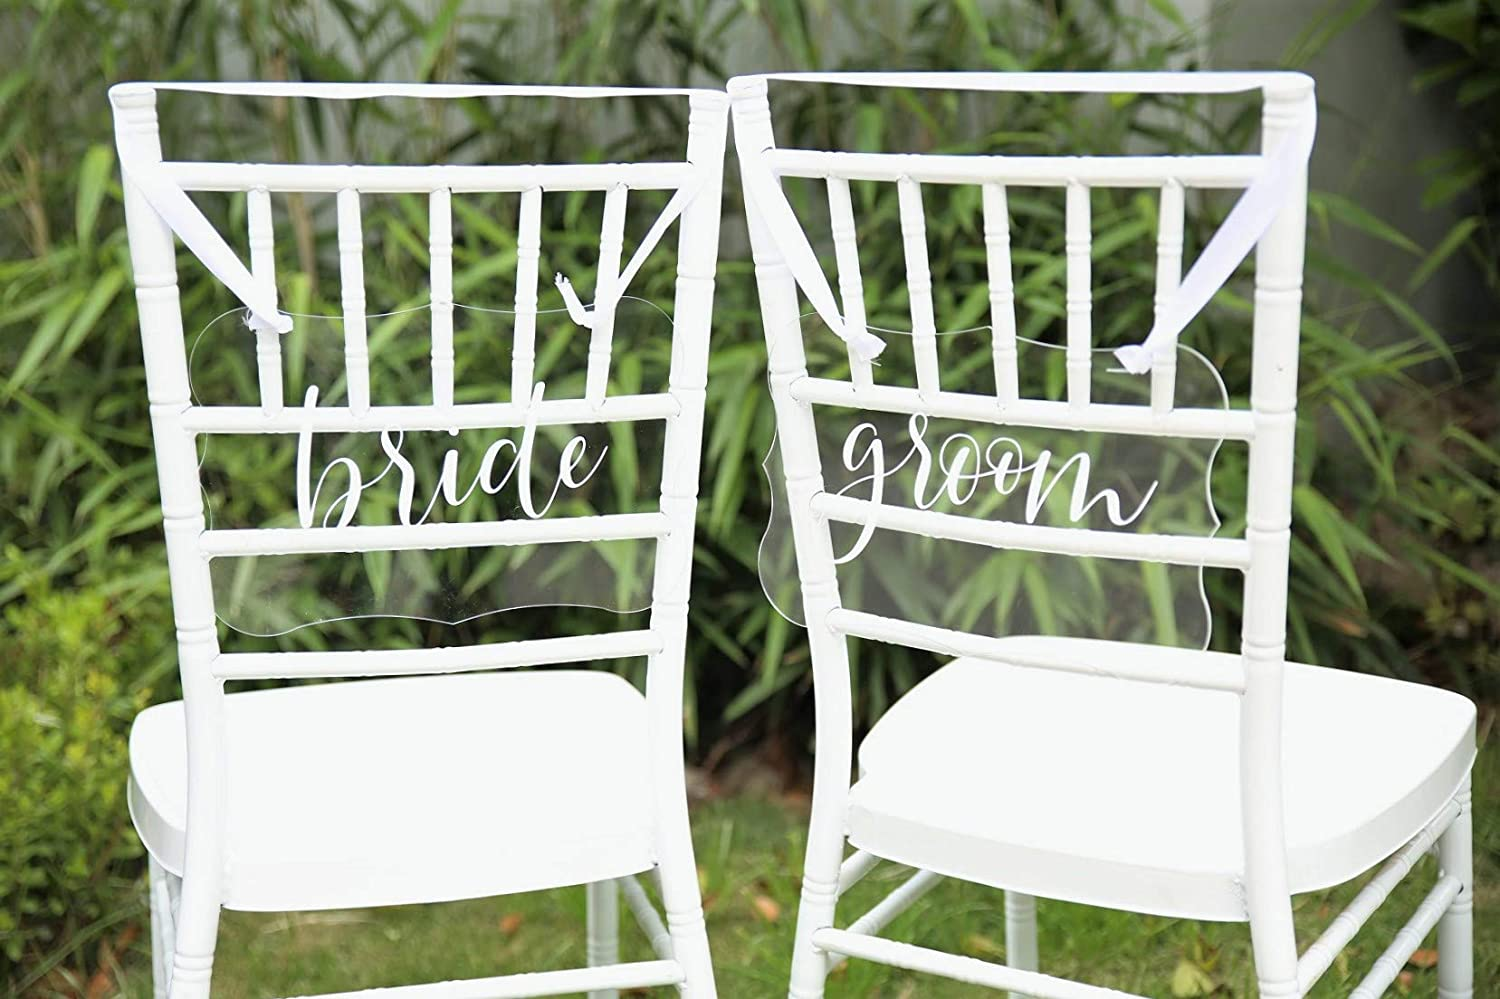 UNIQOOO Bride & Groom Acrylic Chair Back Signs | Wedding Chair Back Sign |  Printed Calligraphy Hanging Sign W/Ribbon | Perfect for Wedding Party